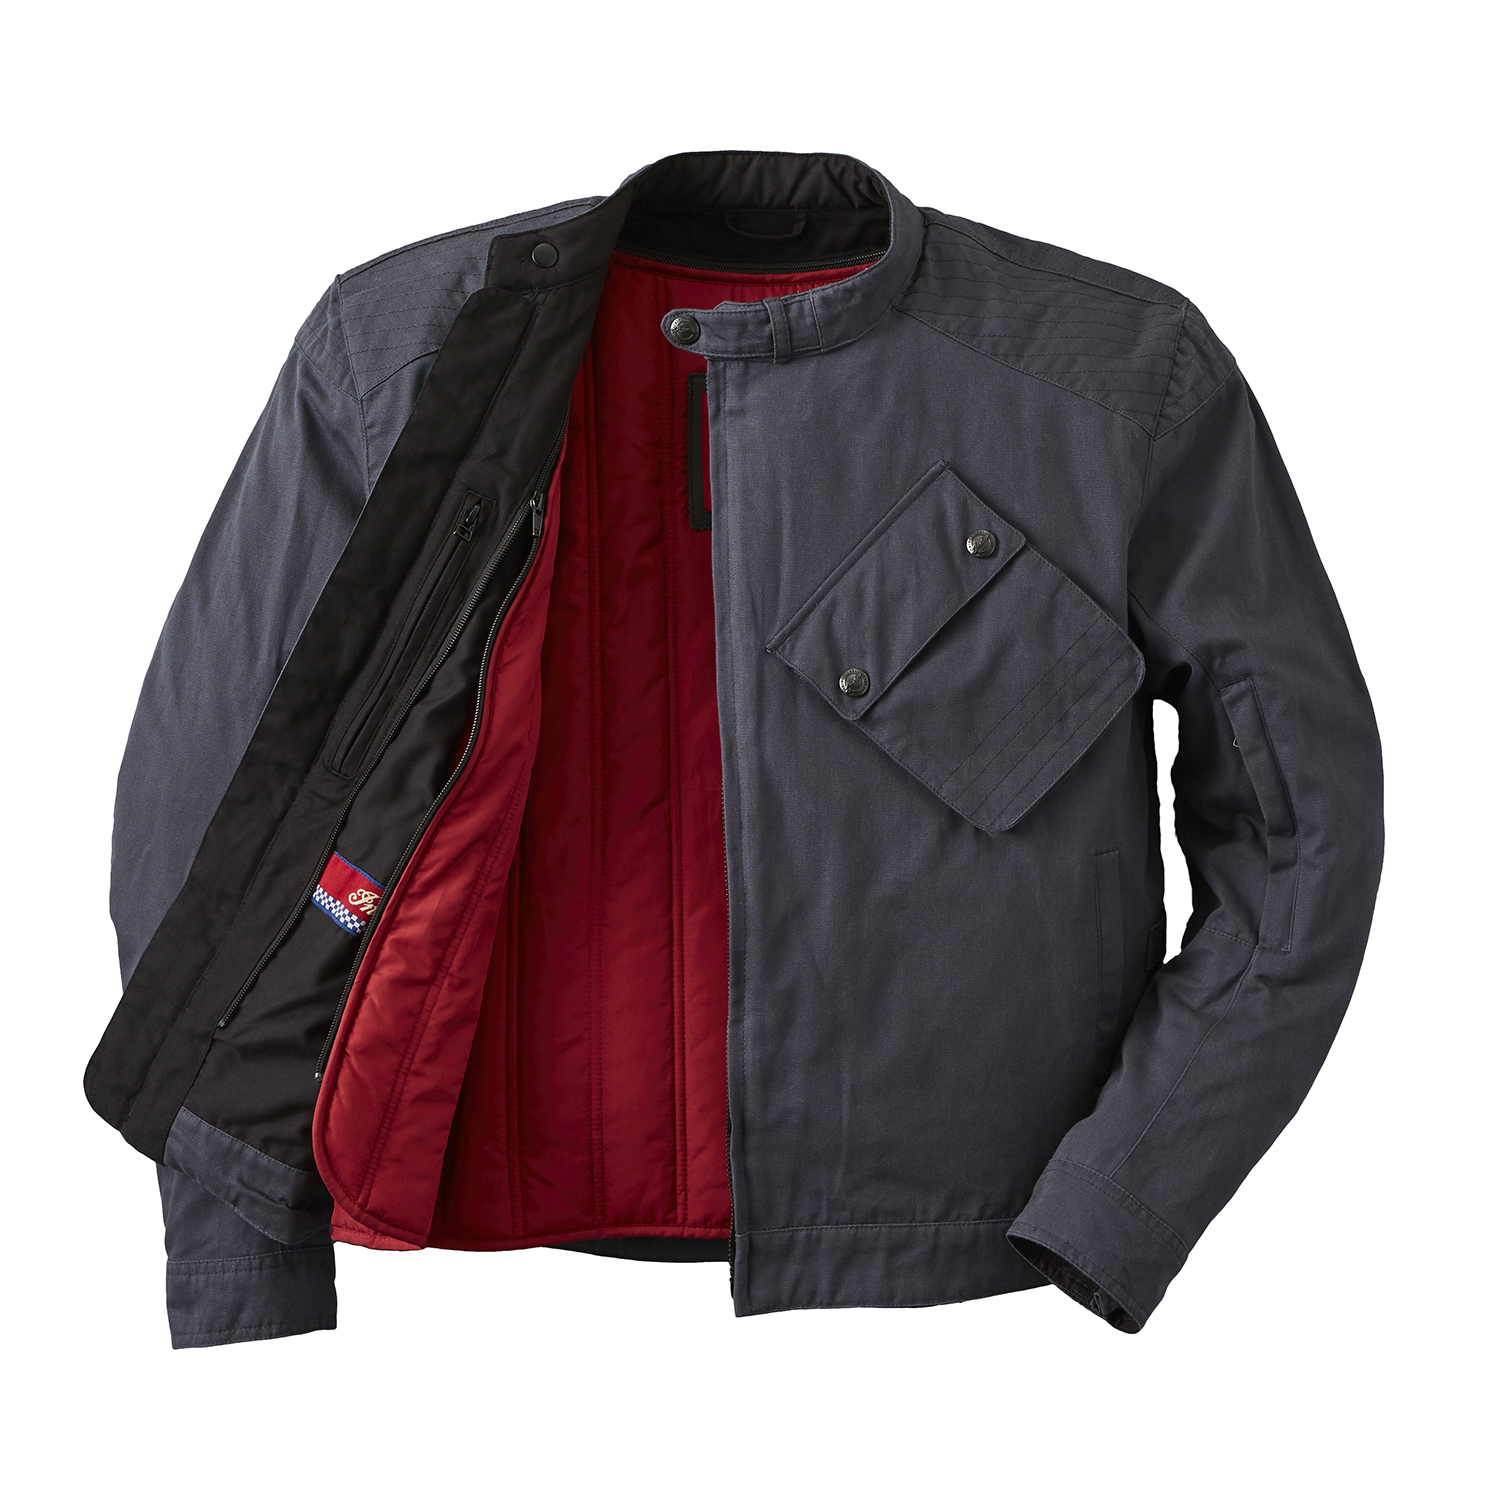 miniature 9 - Indian Motorcycle Men's Waxed Cotton Sacramento Riding Jacket with Removable